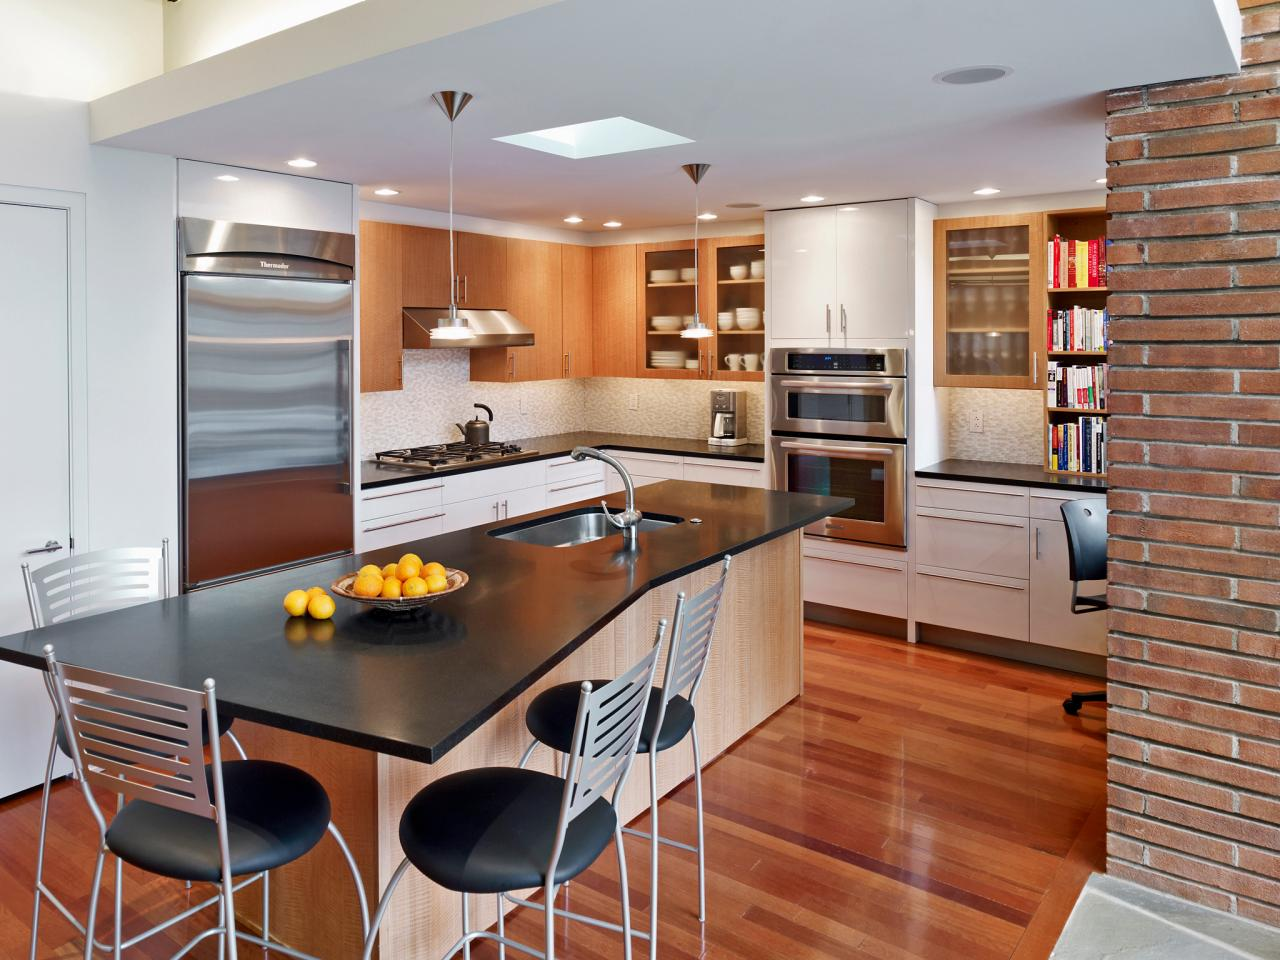 Modern Small Kitchen With Island small kitchen appliances: pictures, ideas & tips from hgtv | hgtv